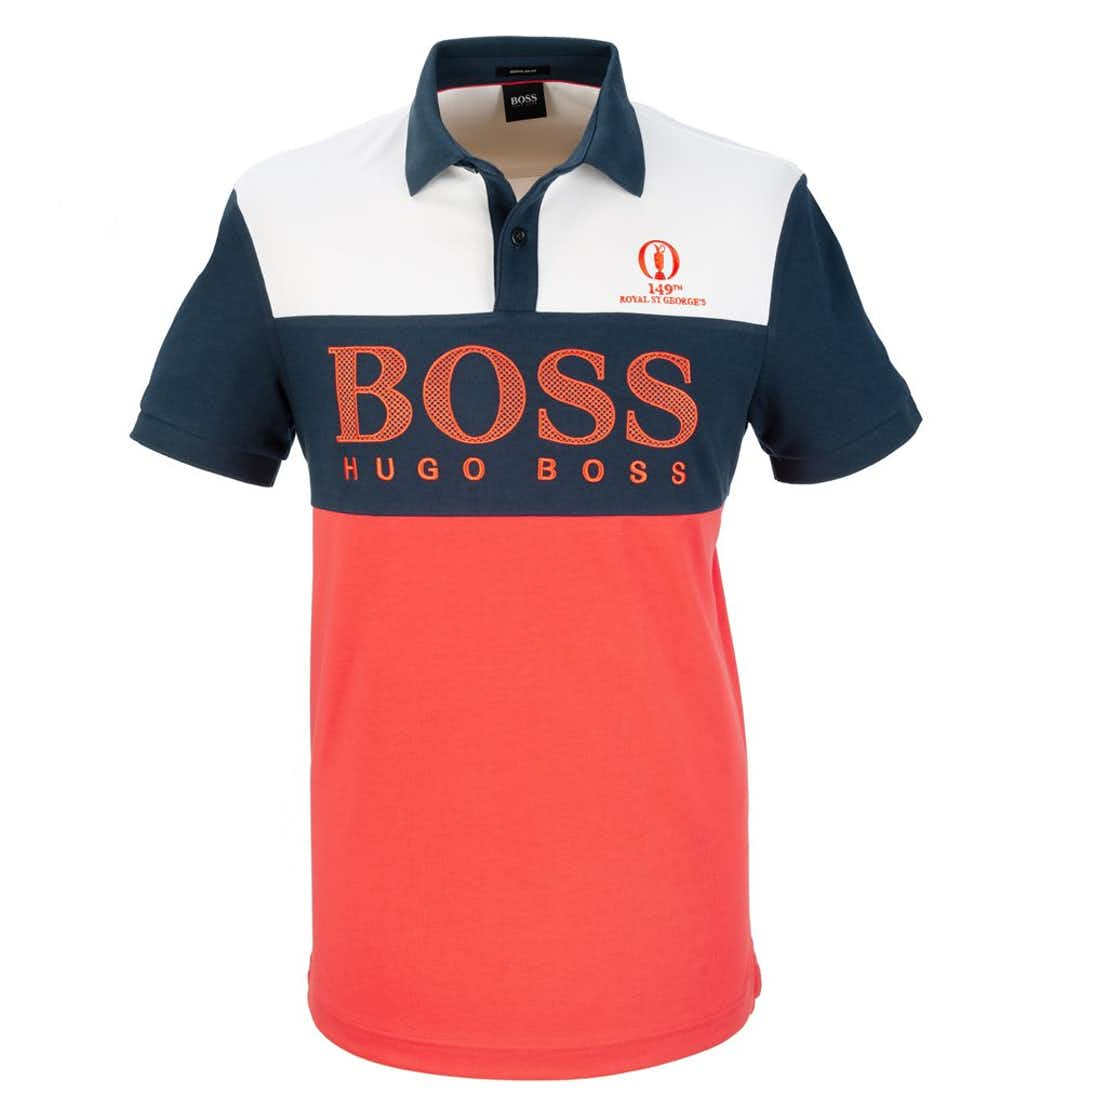 149th Royal St George's BOSS Panel Polo Shirt - Red